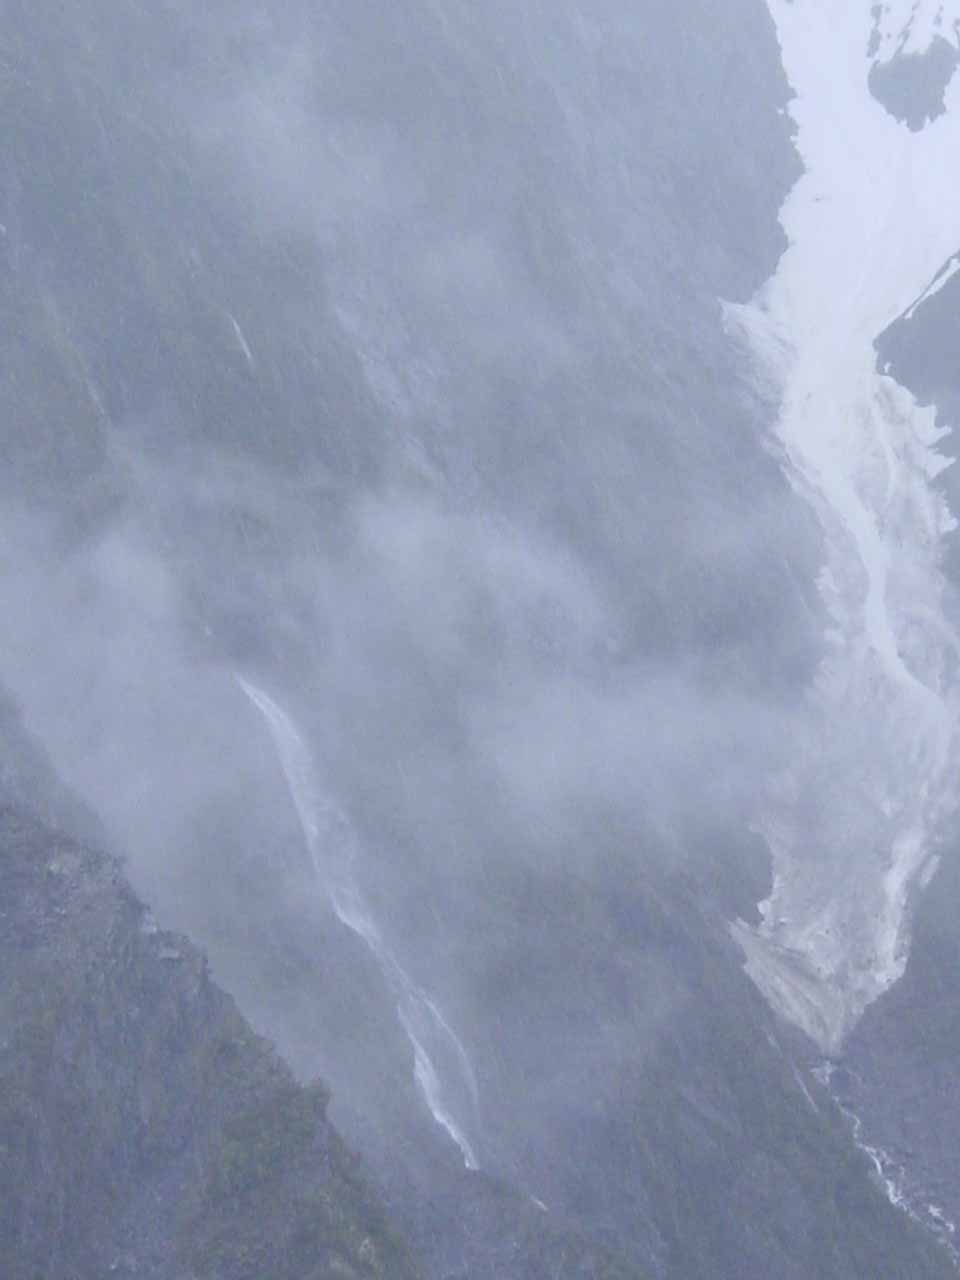 While we were on the Franz Josef Glacier, we looked towards this waterfall through the clouds that might be the Unser Fritz Falls